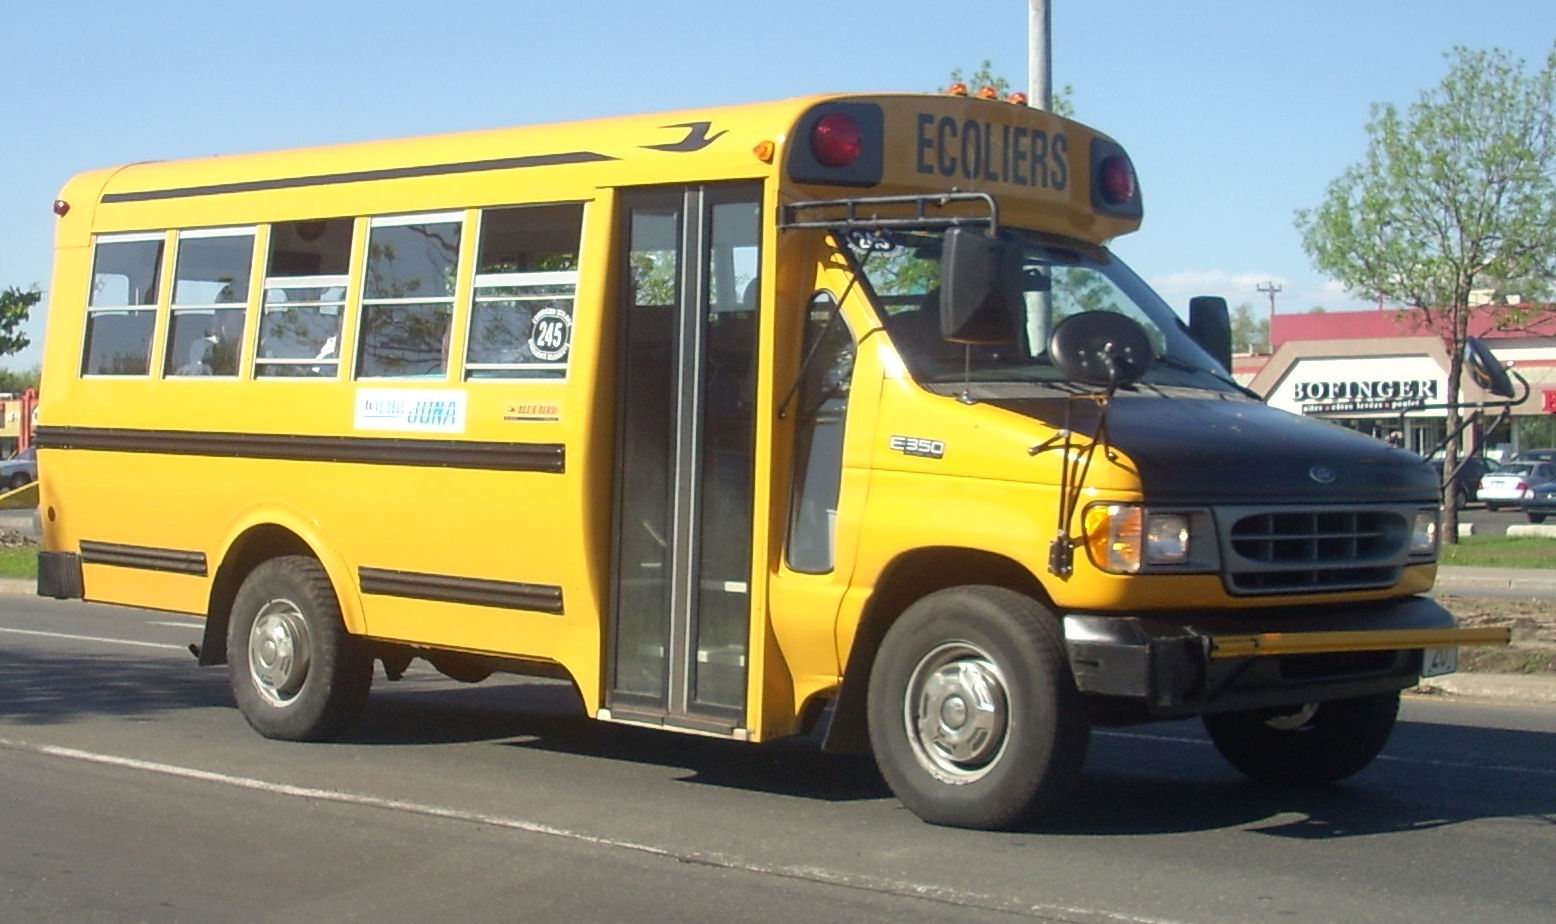 Collins Bus Wiring Diagrams Trusted Corbeil Diagram Also Bluebird School Chevy On 4 3 Engine Thomas